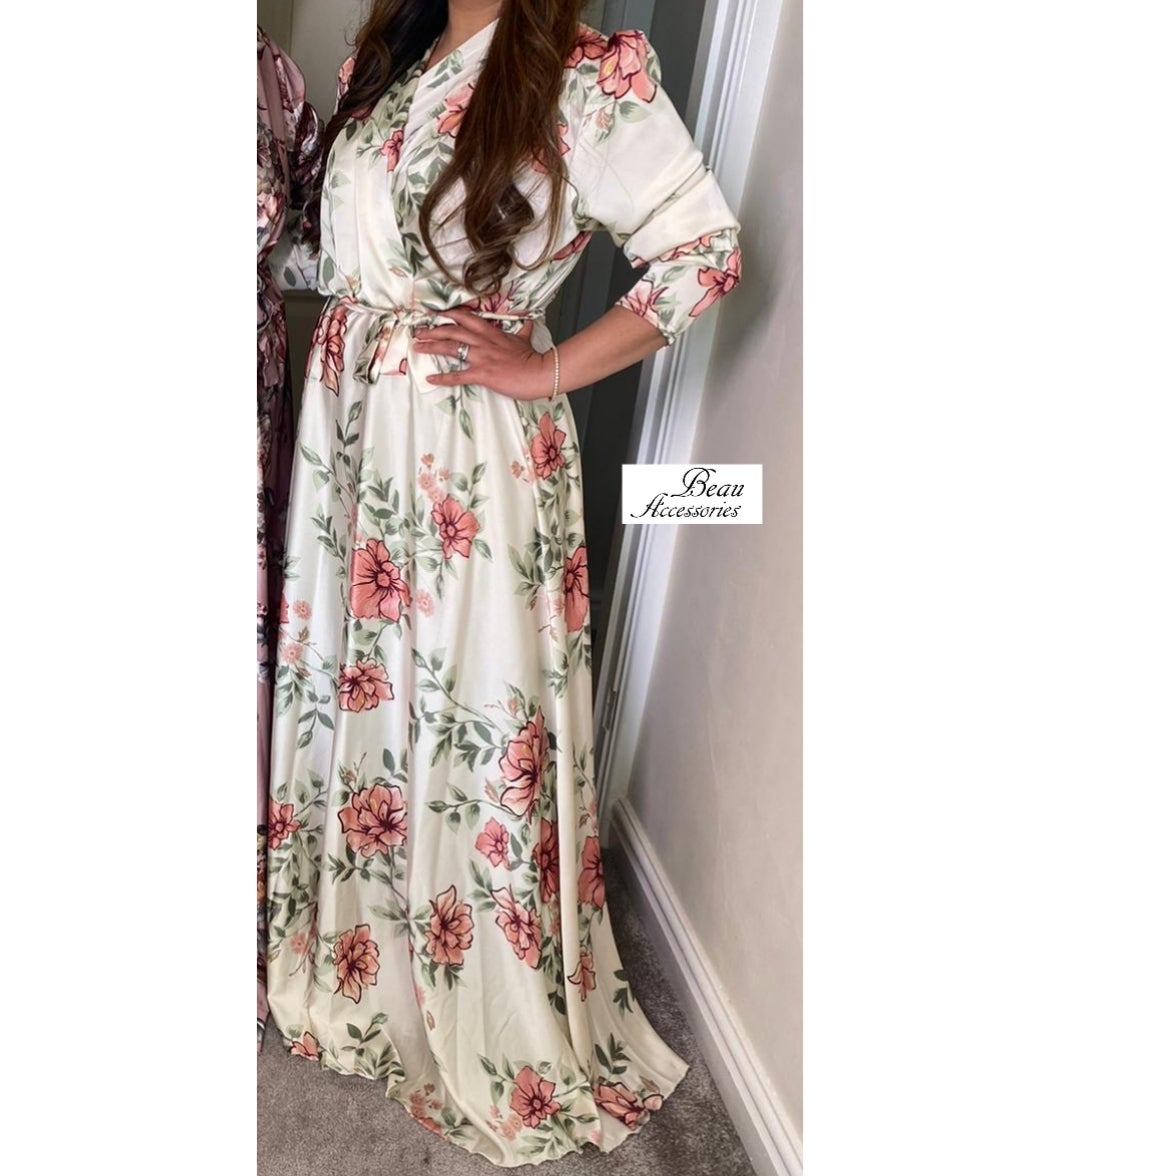 Image of Digital Floral Print Satin Gown - ALL colours